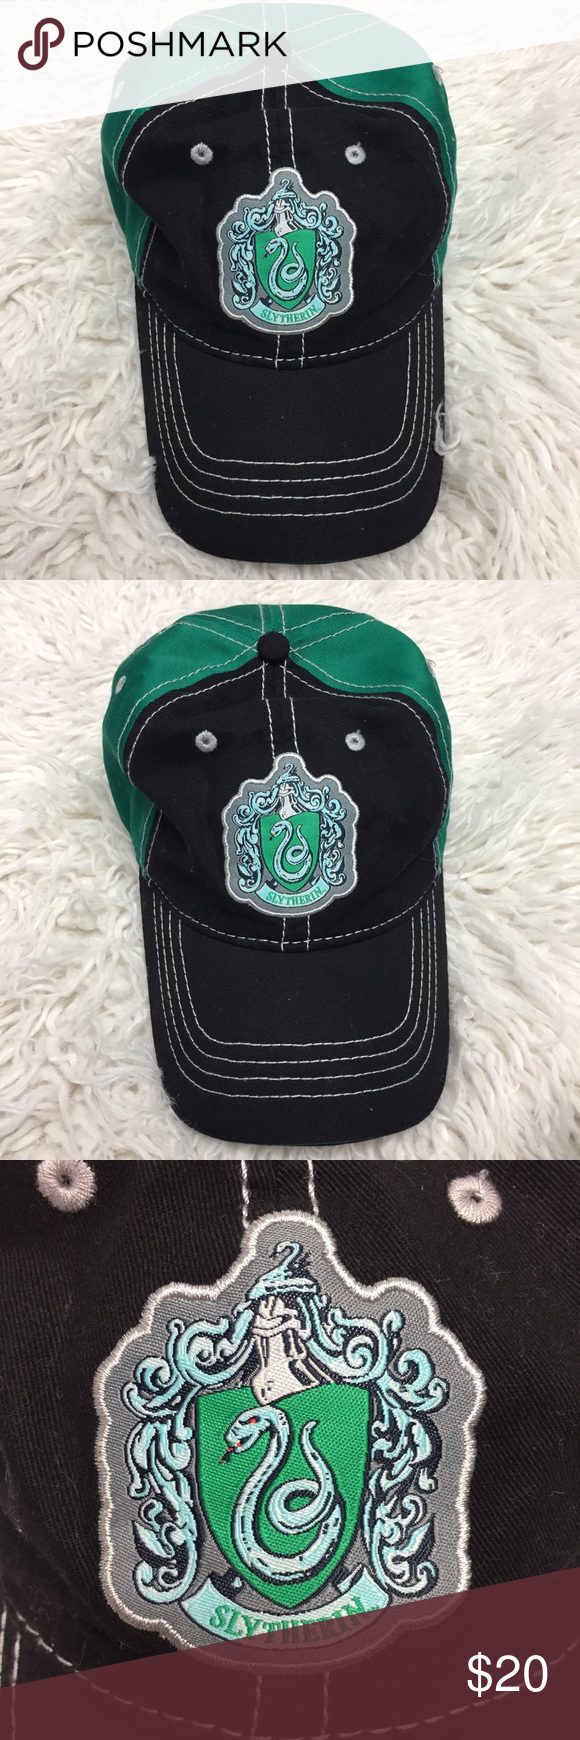 Slytherin Dad Hat from Harry Potter World Universal Studios authentic  product. Reasonable offers are always welcome! Please no trades 🌸 harry  potter ... 502be49dc65